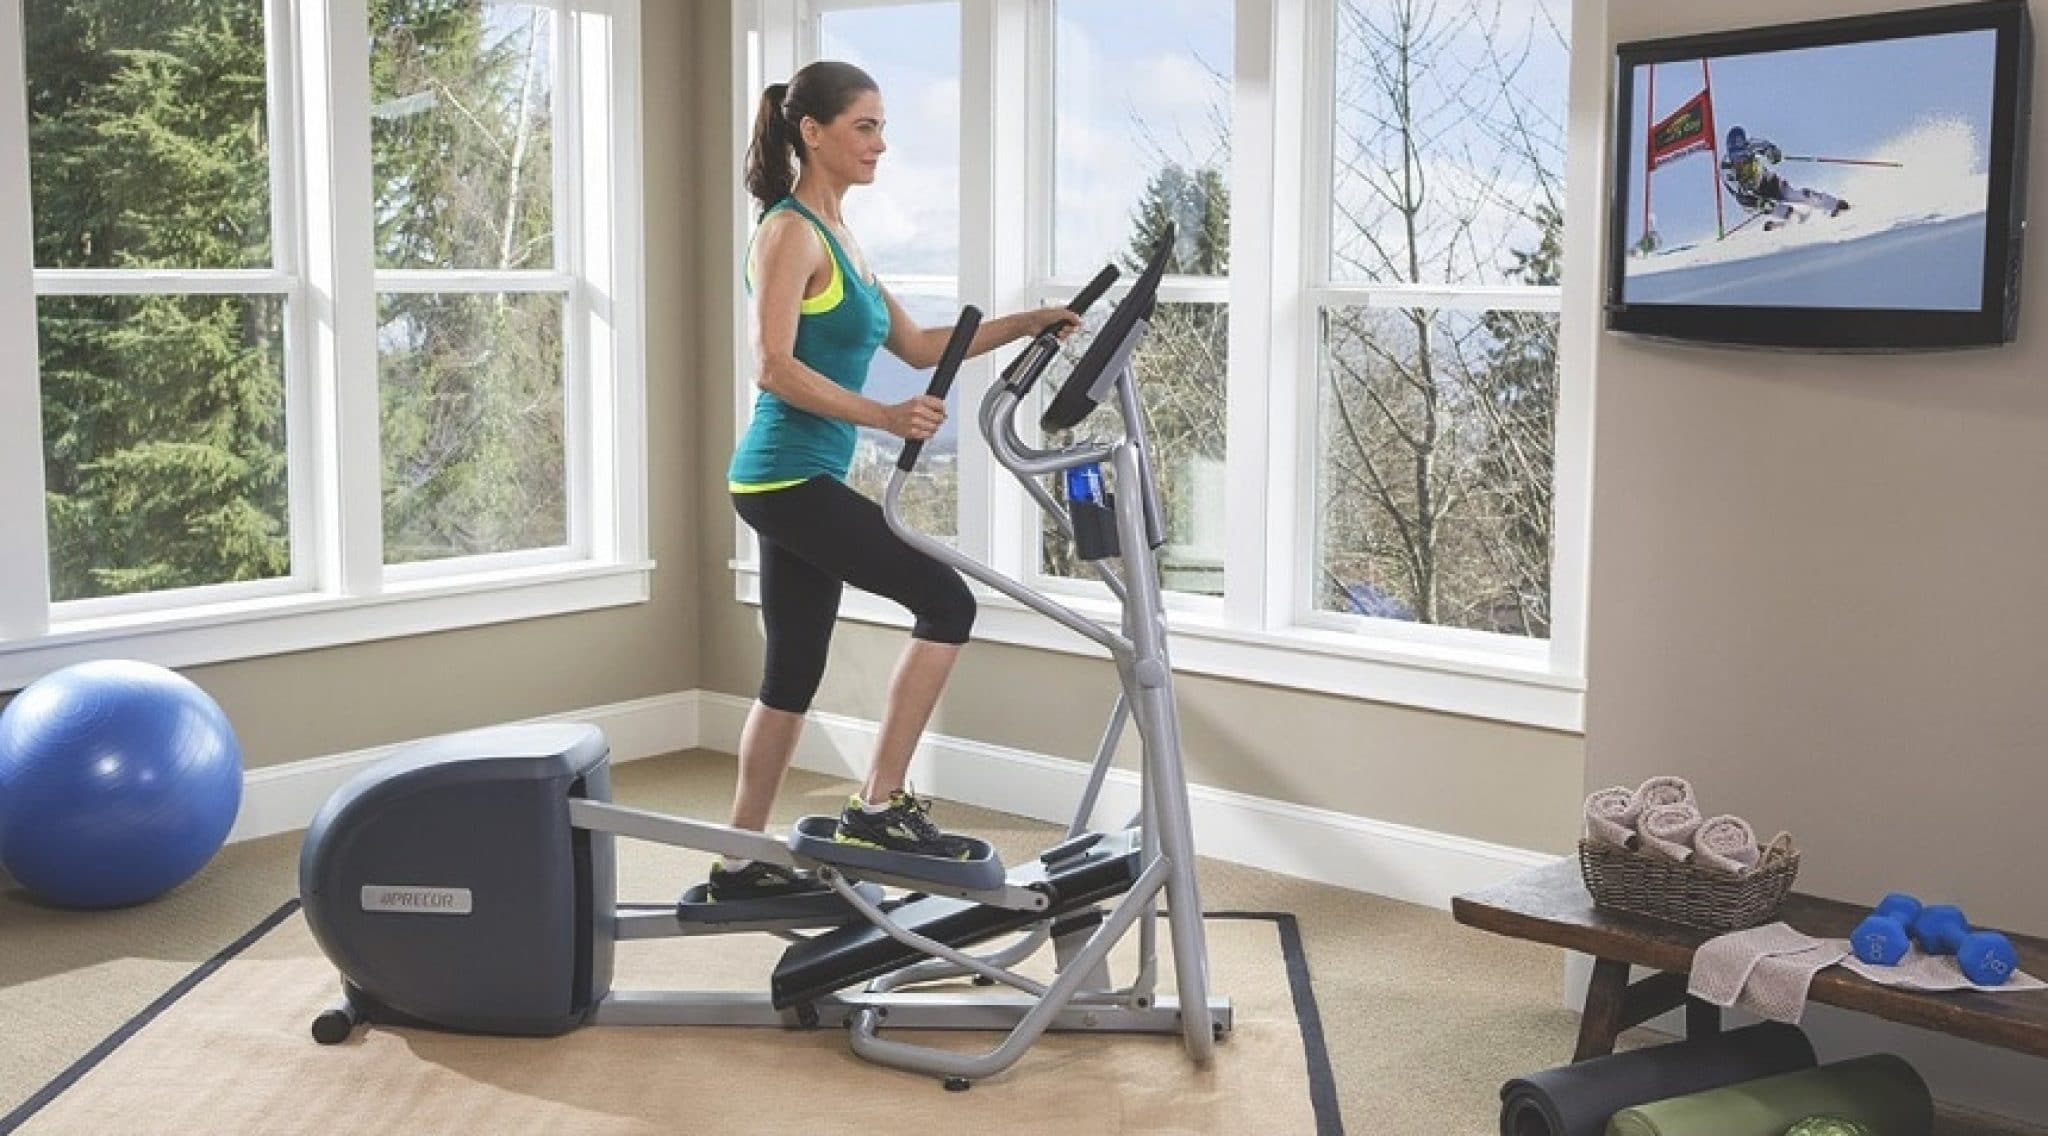 3 Best Ellipticals Under $1500 - All The Best Features In One Device